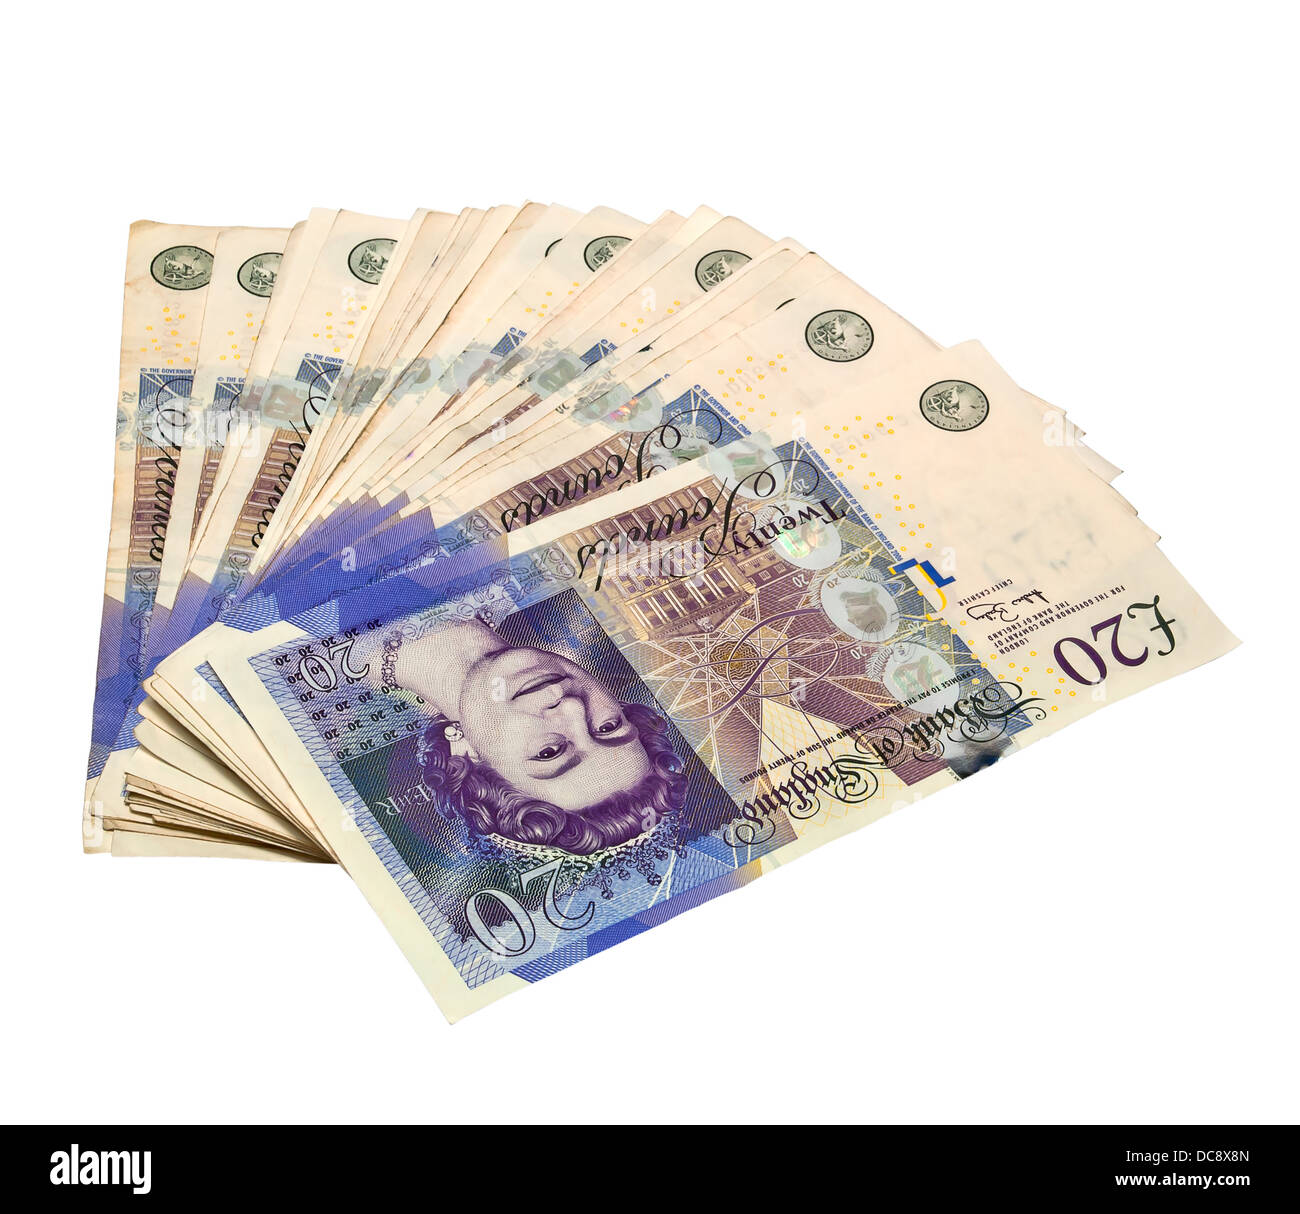 20 pound notes spread out with clipping path - Stock Image